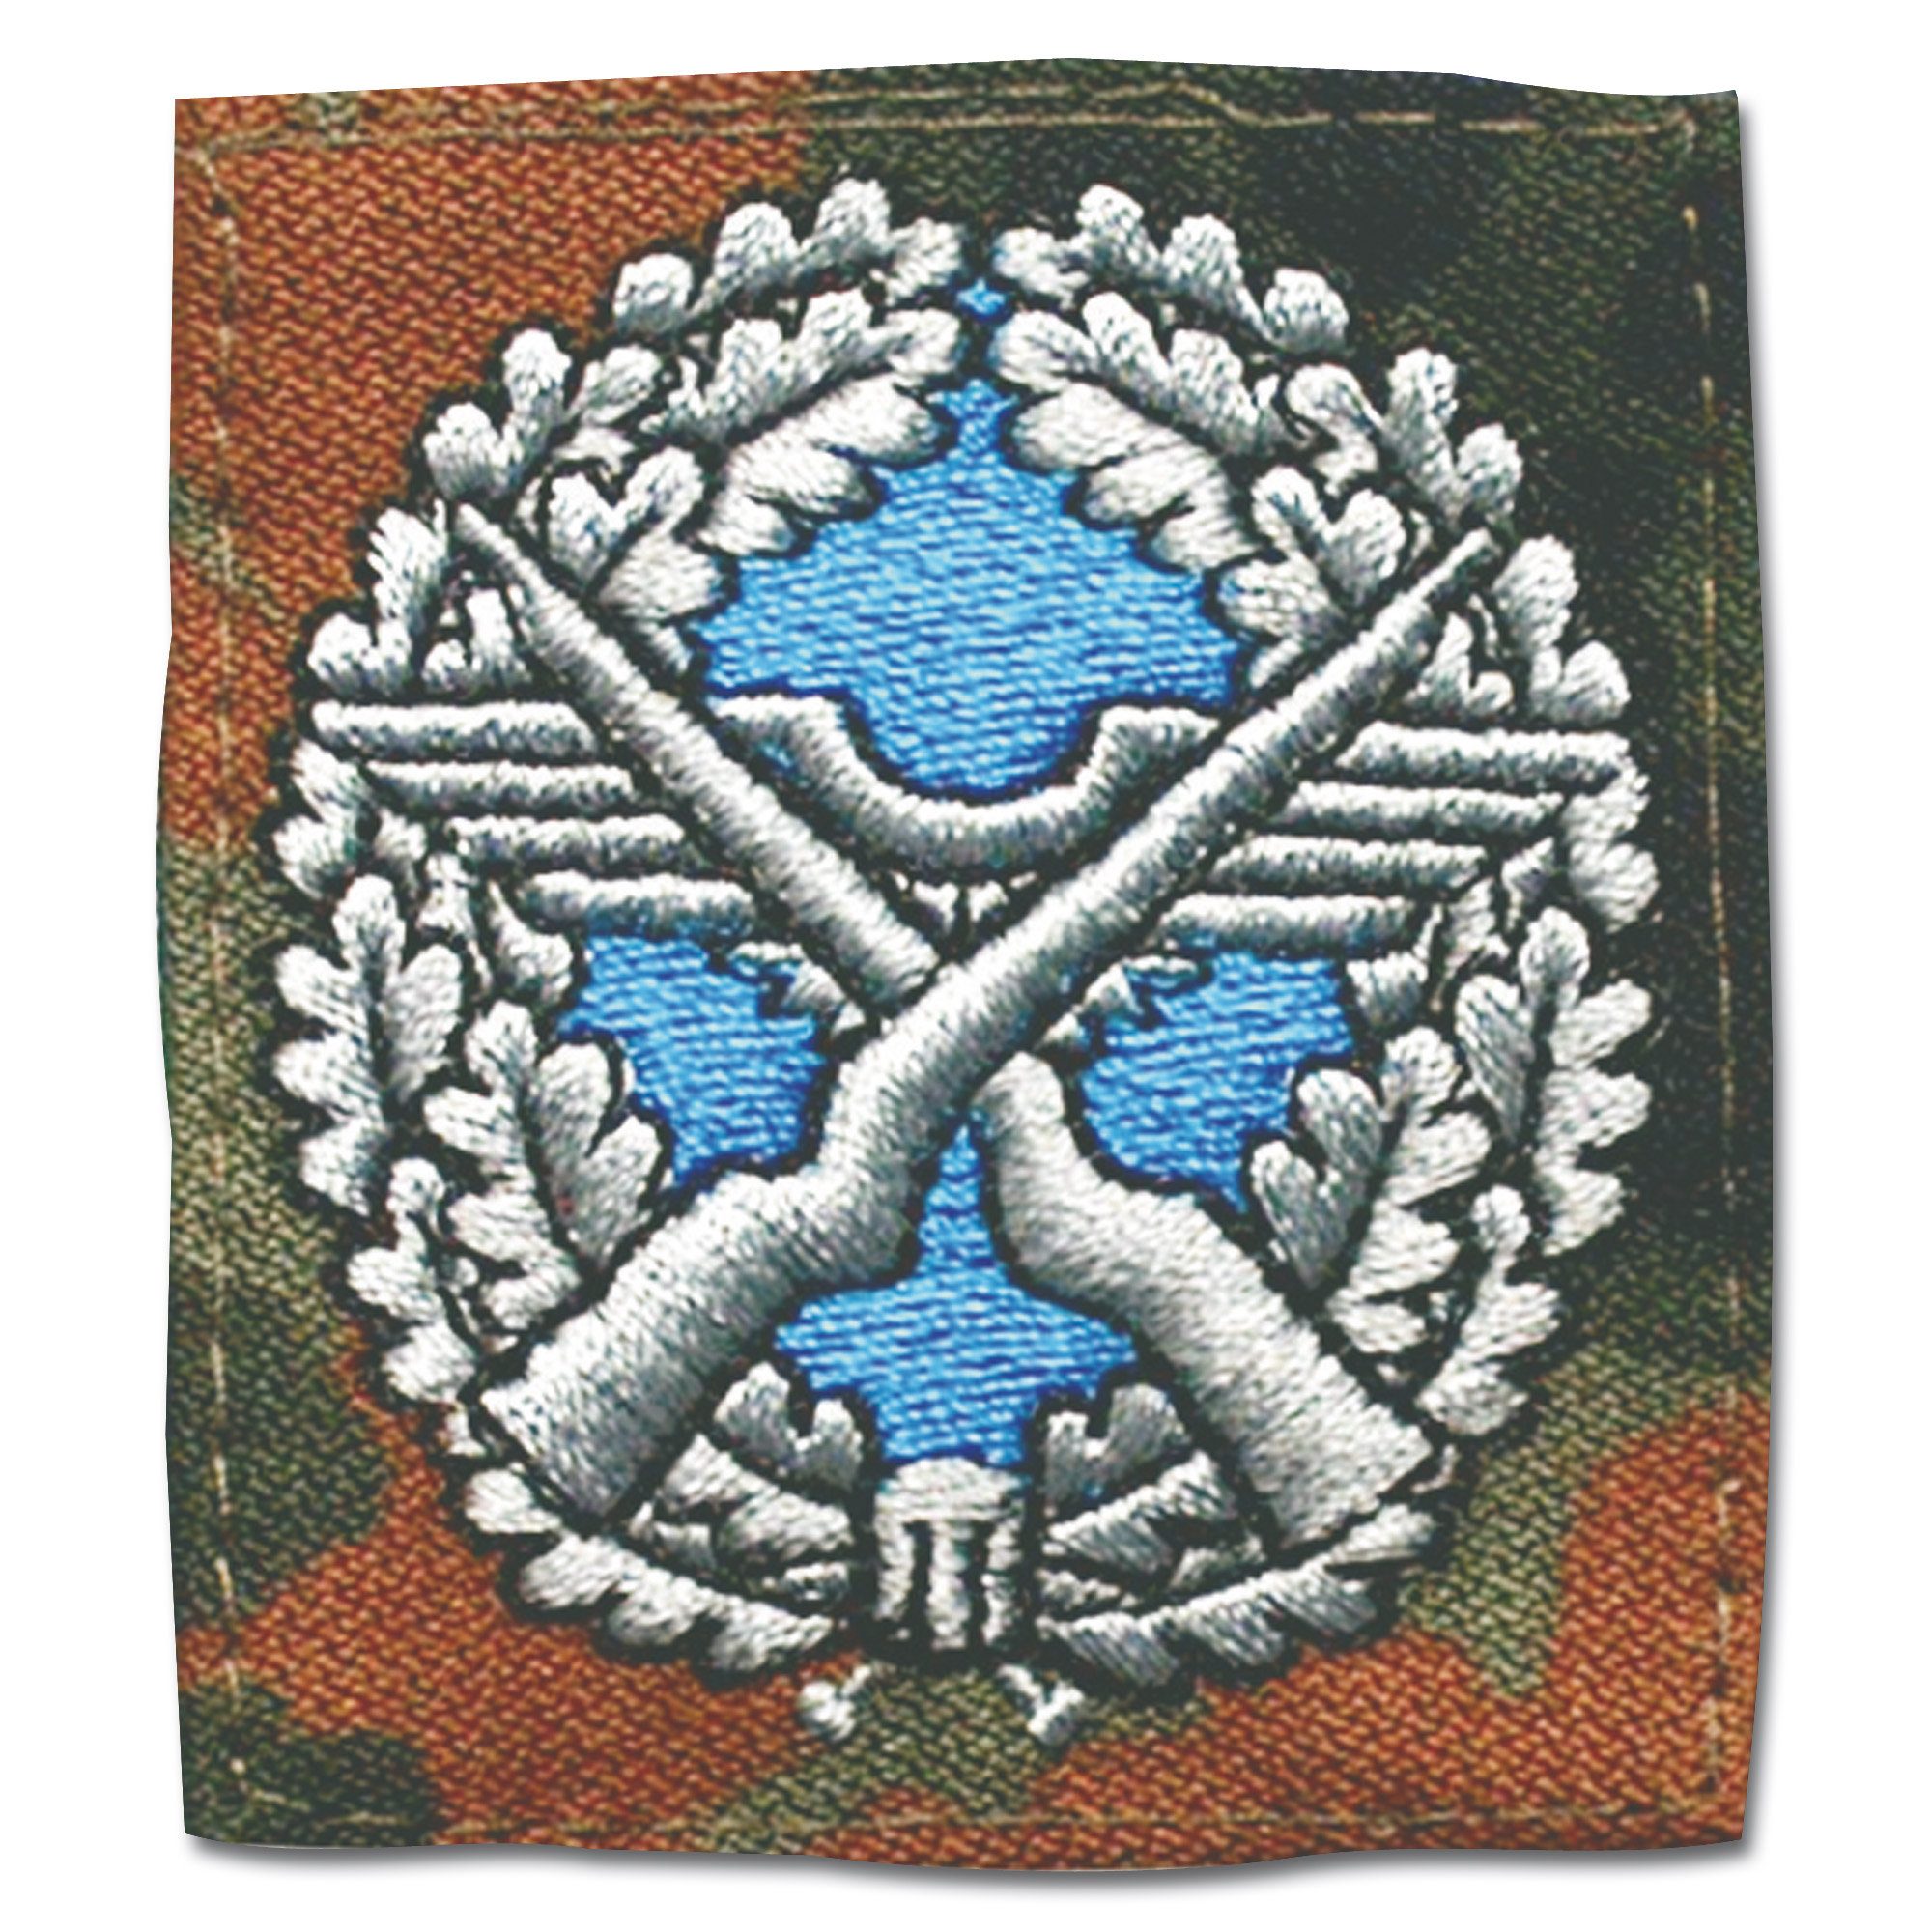 Insignia Military security troops team leader flecktarn/colored